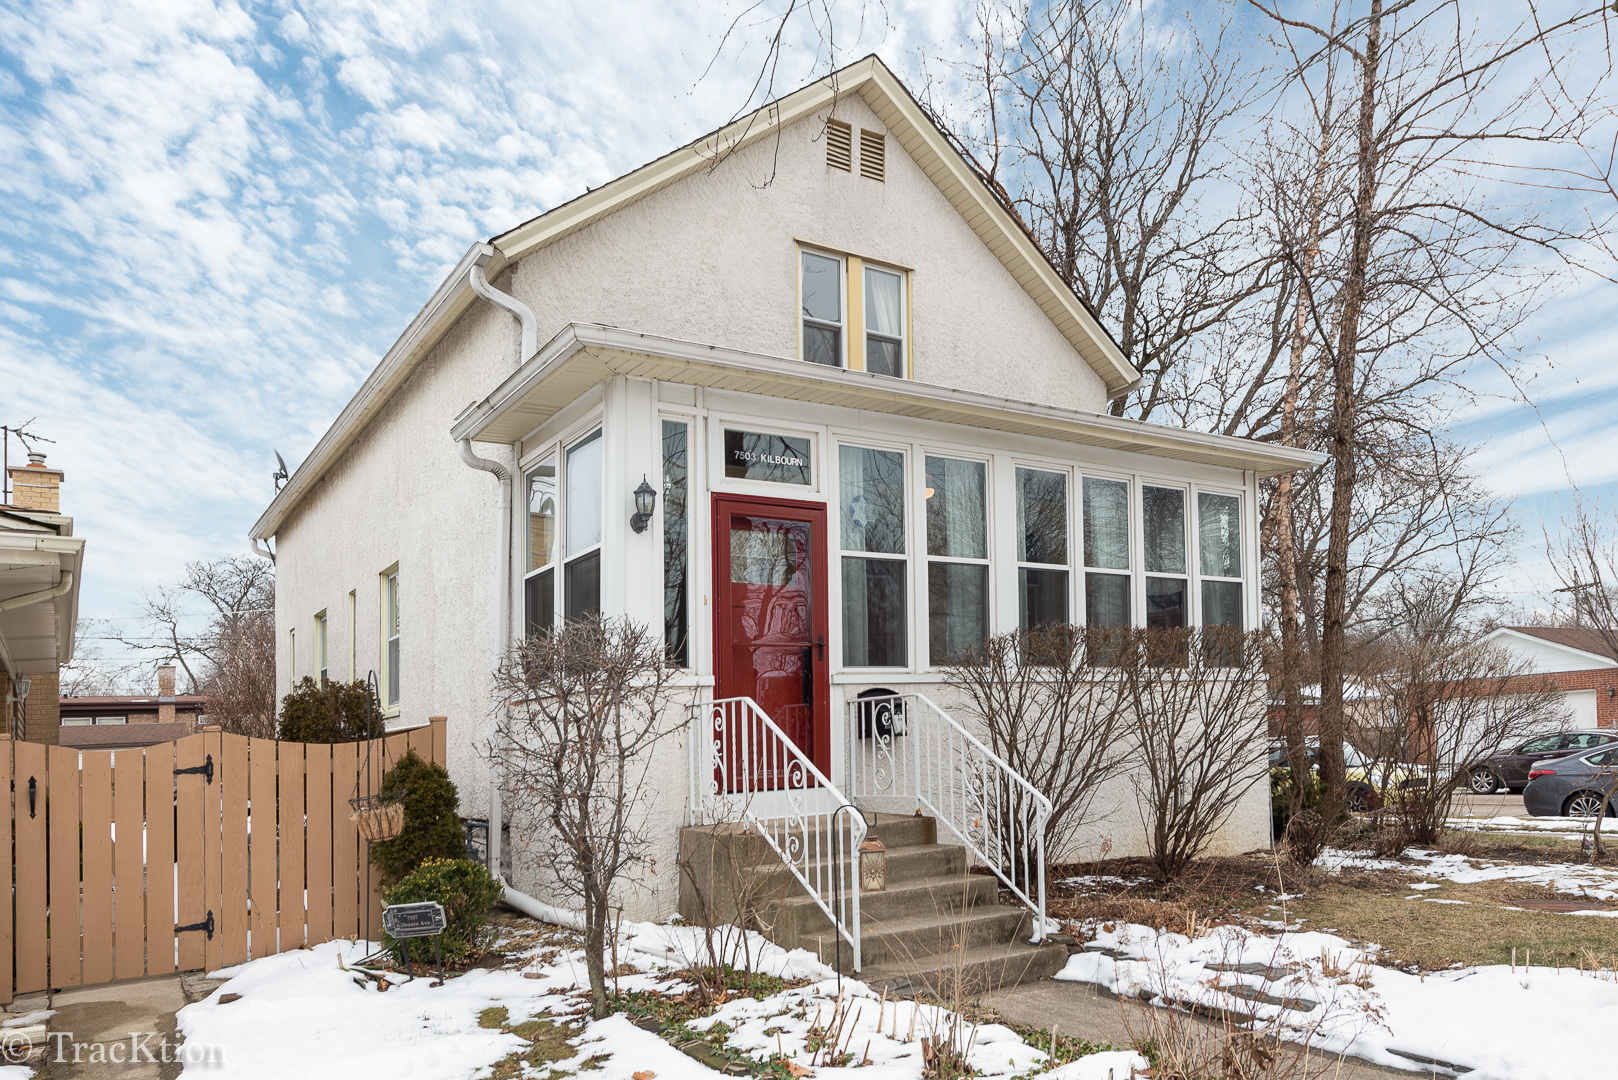 7503 Kilbourn Avenue, Skokie in Cook County, IL 60076 Home for Sale